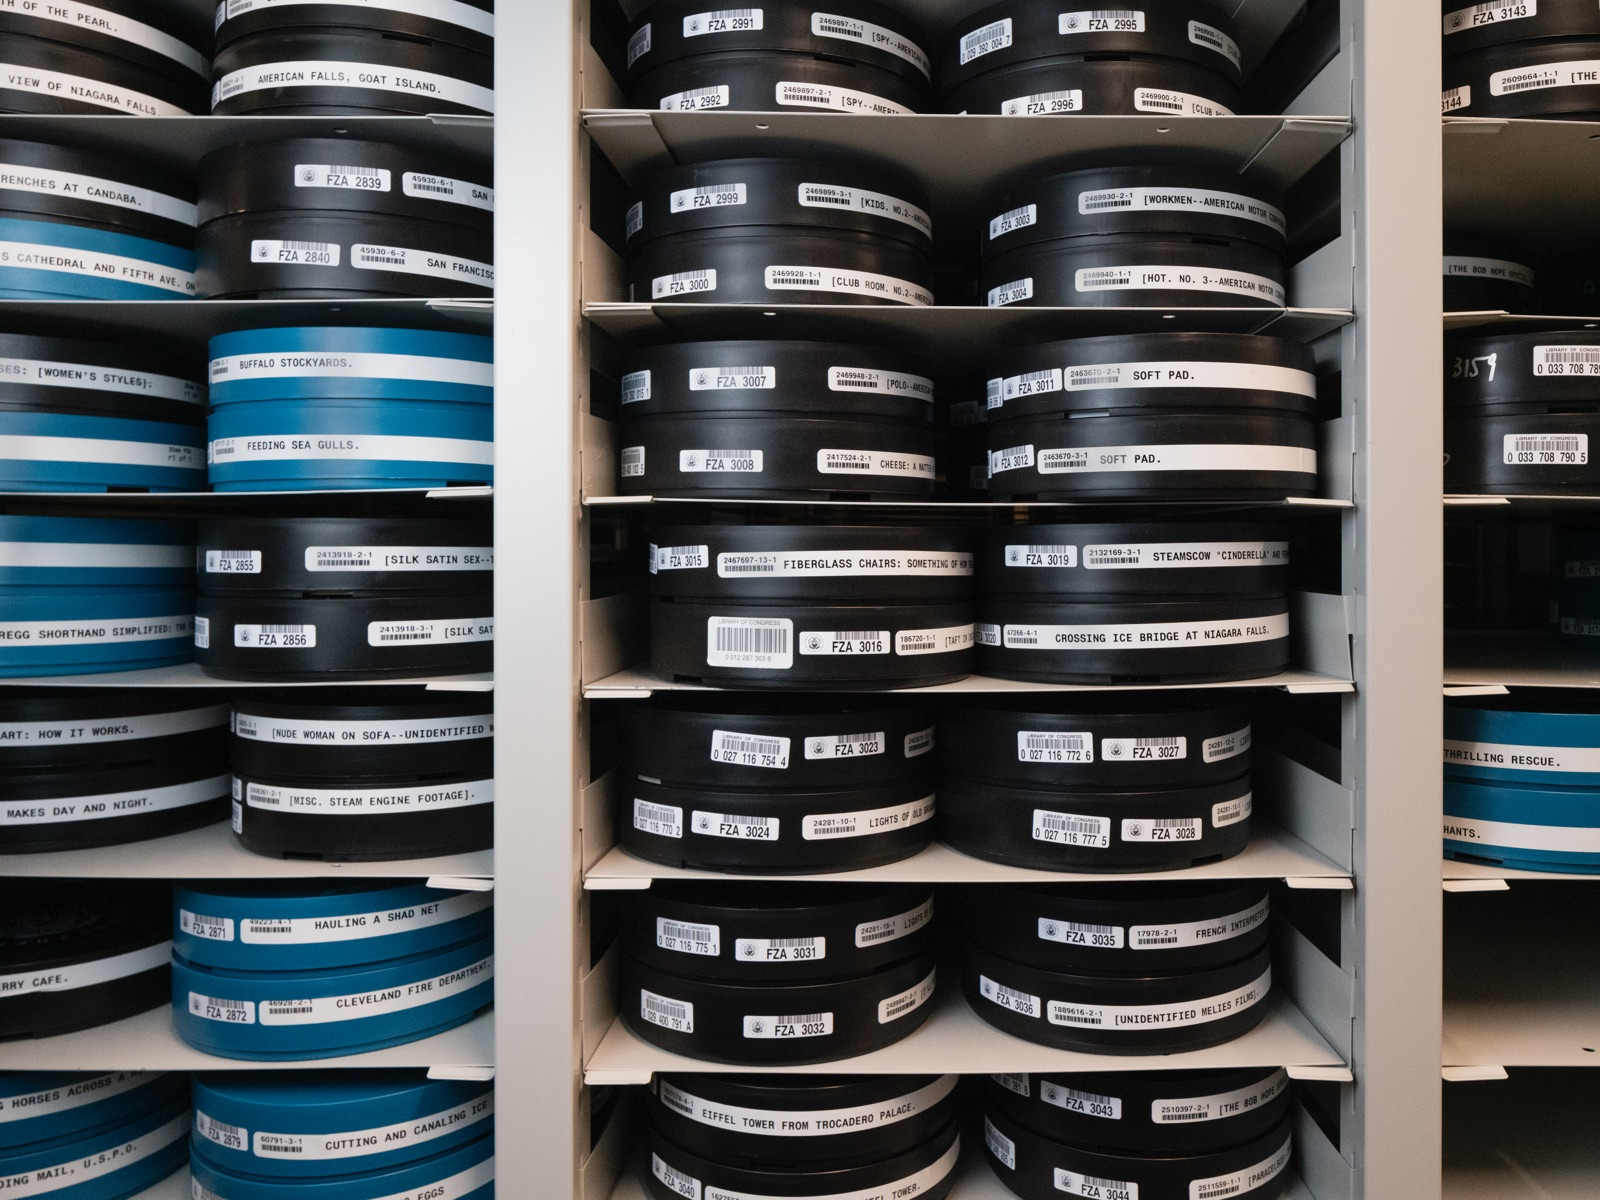 Restored films at the Library of Congress